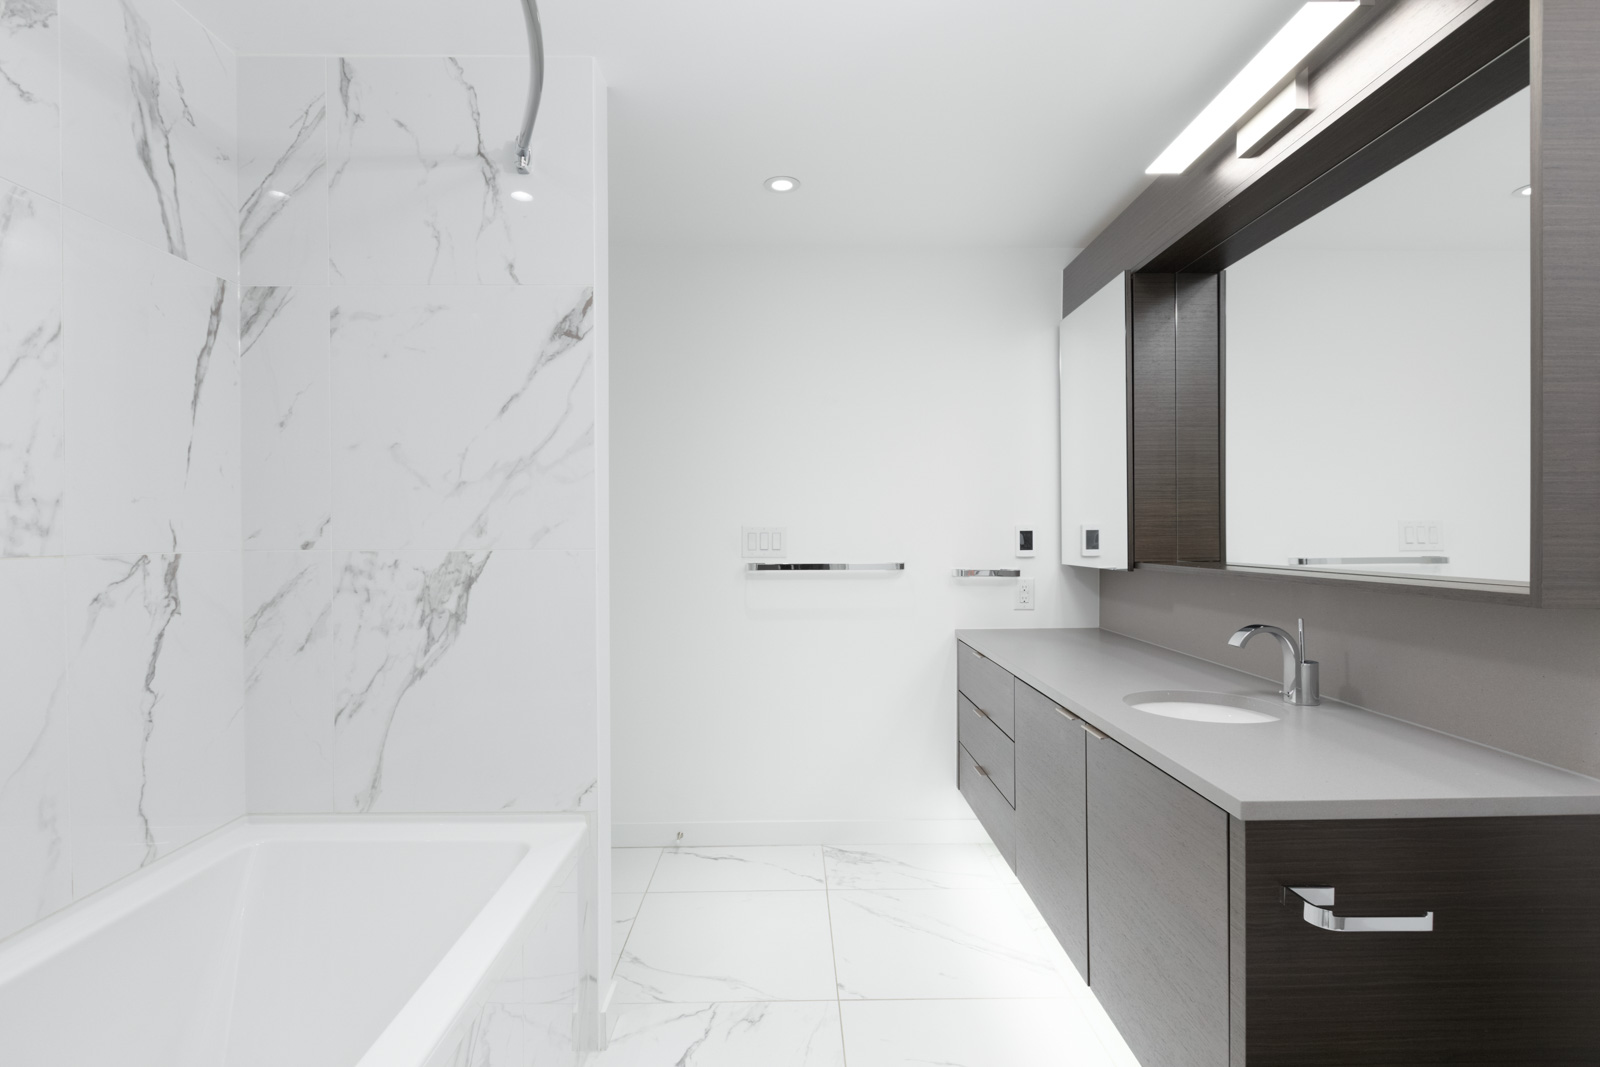 bathroom with bathtub on left and counter and mirror on right and white tiling and floors